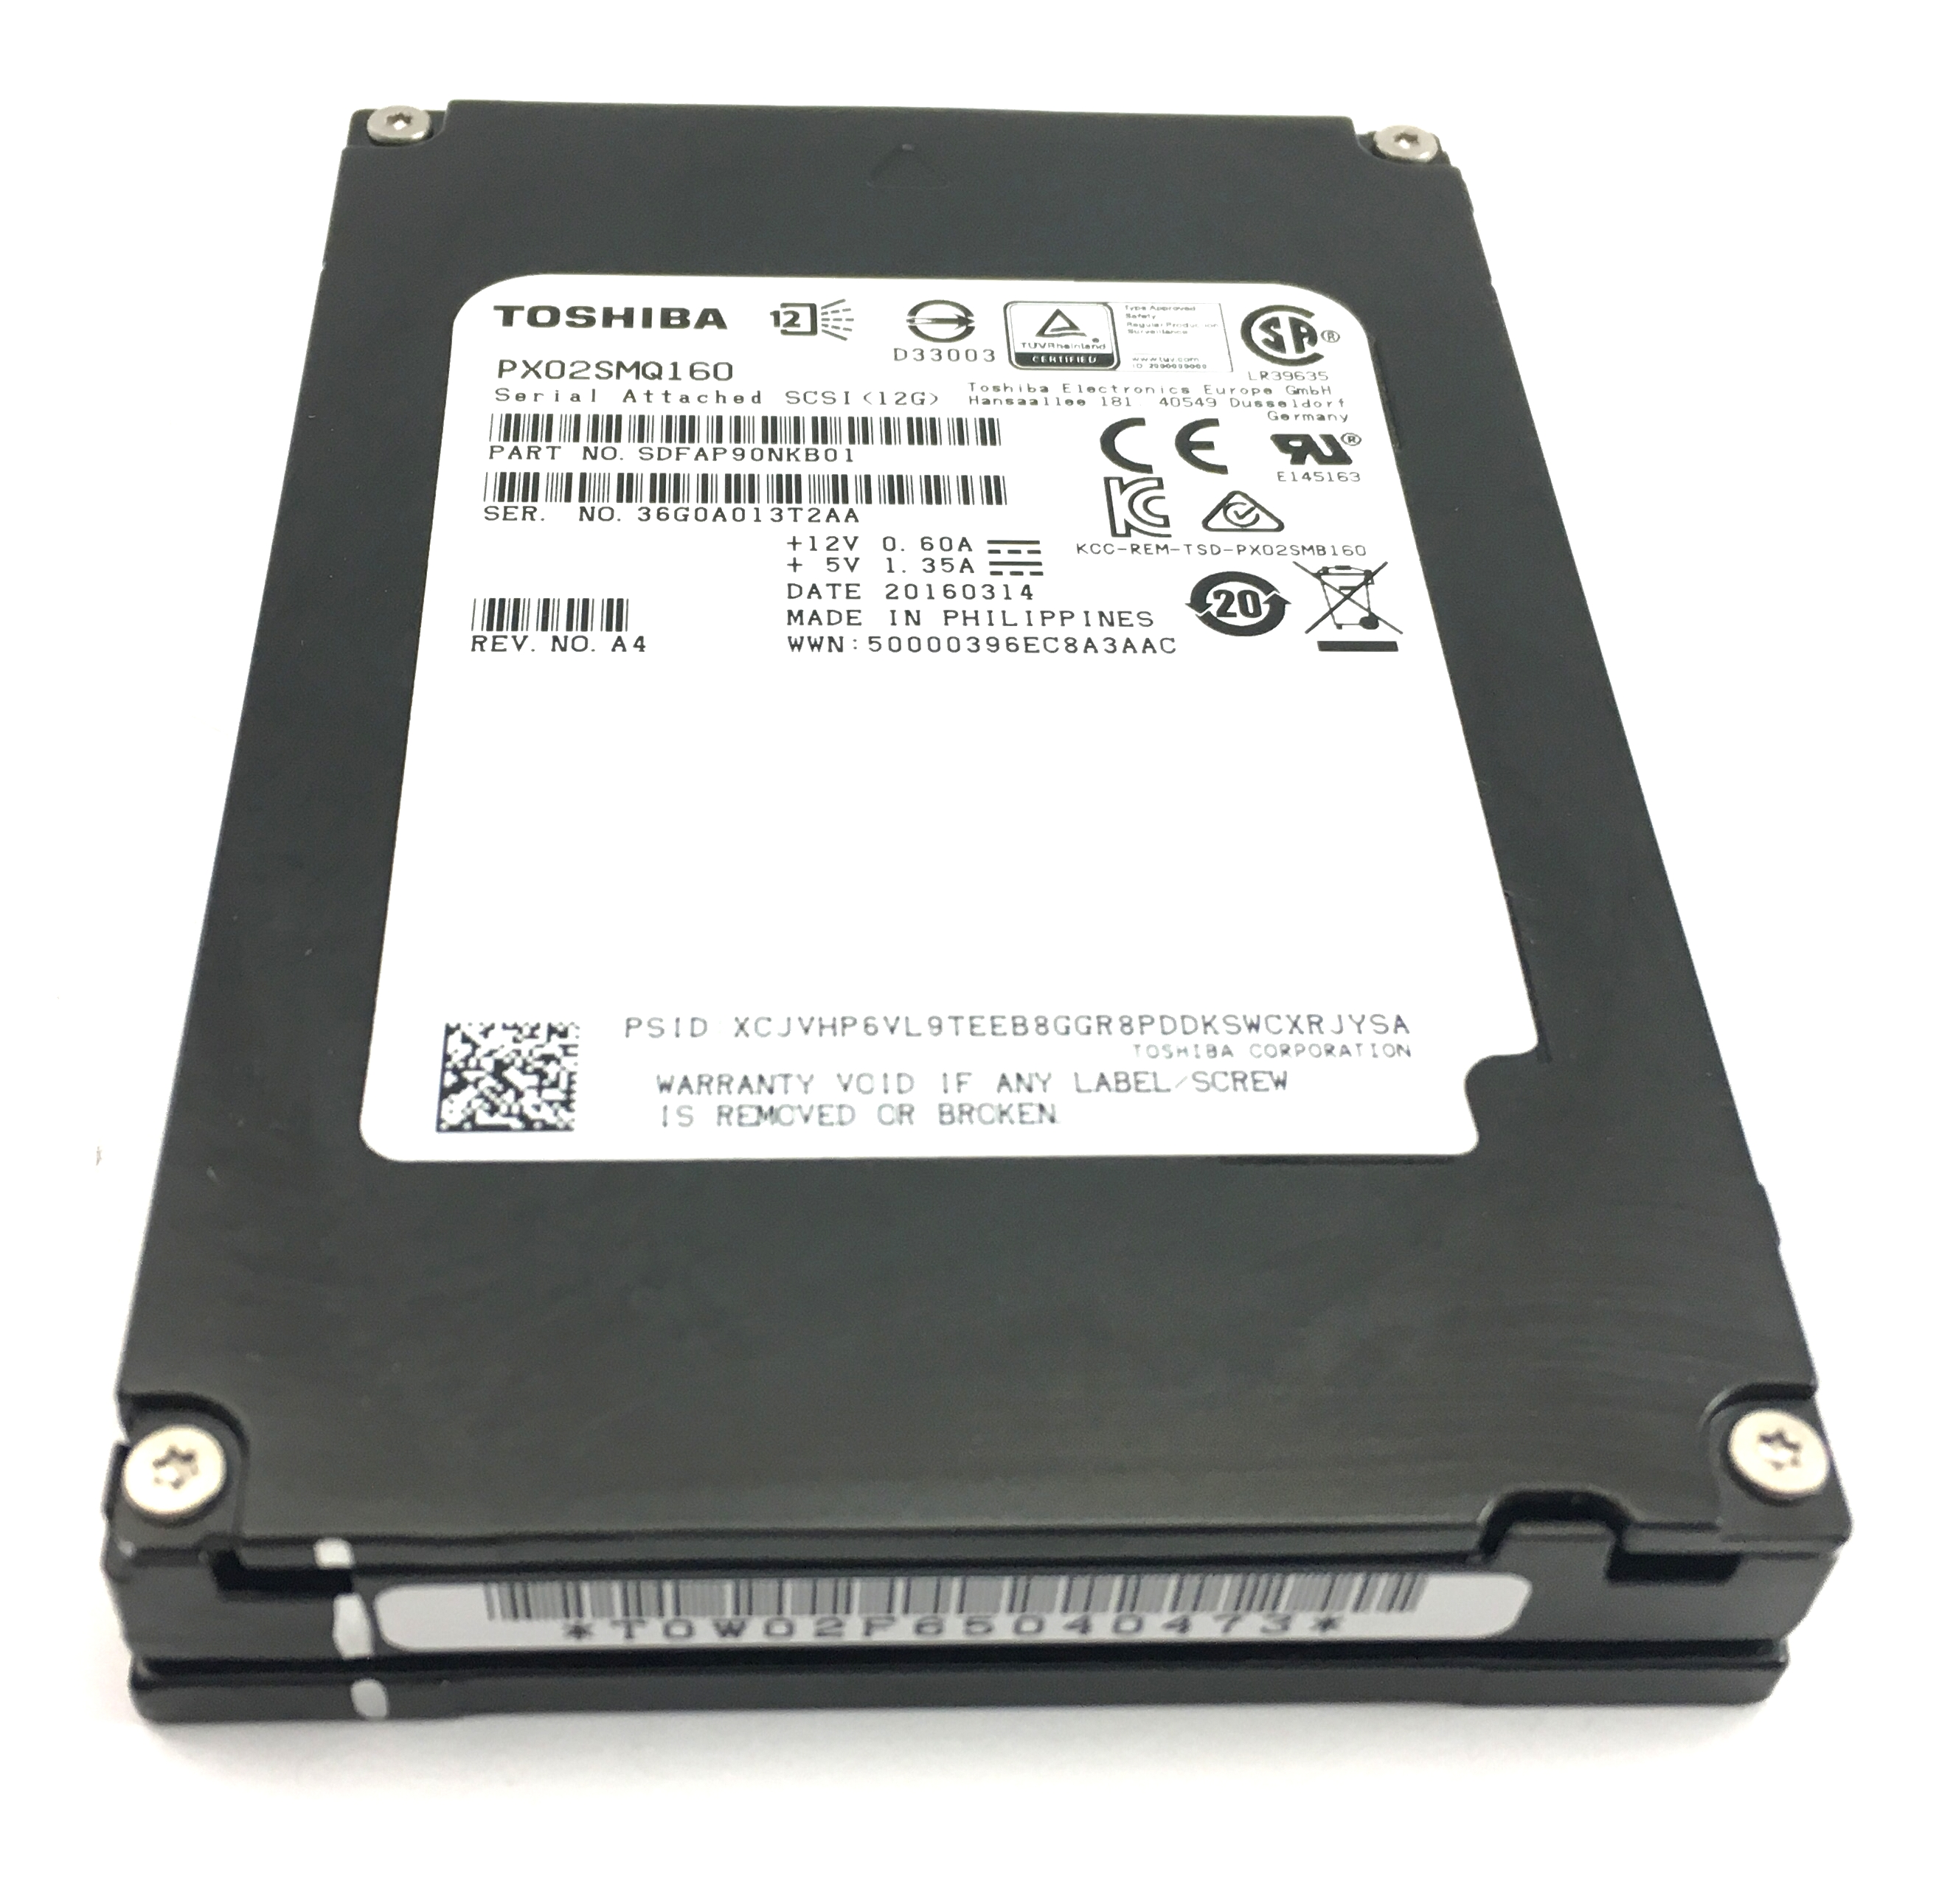 Toshiba Px02Sm Series 1.6TB 12Gbps SAS 2.5'' Solid State Drive SSD (SDFAP90NKB01)